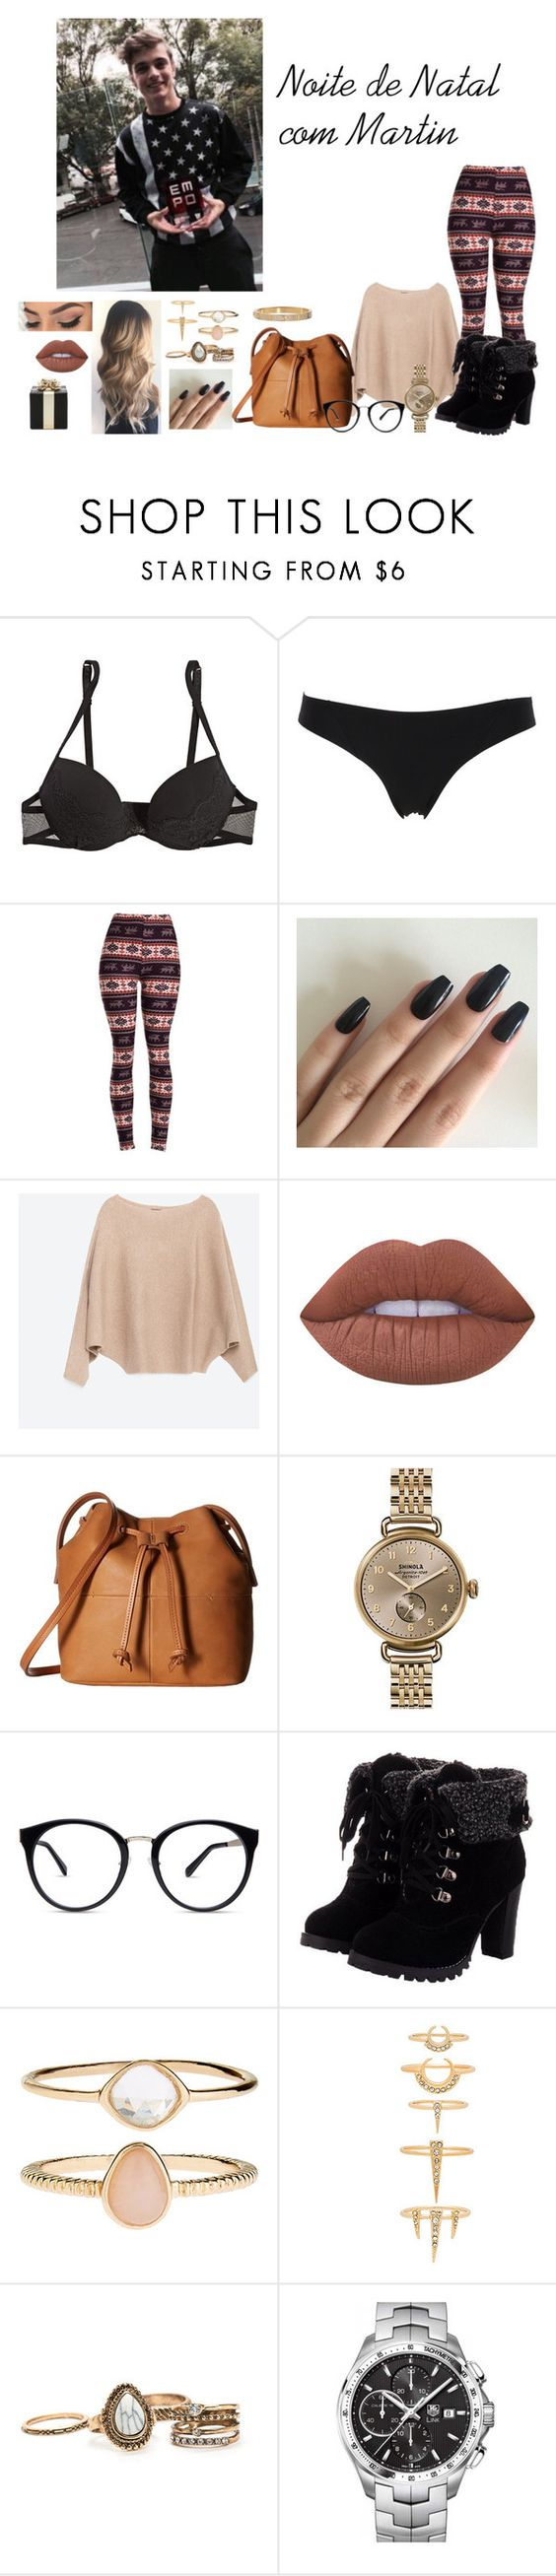 """Sem título #874"" by sr-magcult-bieber-gomez ❤ liked on Polyvore featuring La Perla, Zara, Lime Crime, ECCO, Shinola, Accessorize, Luv Aj, TAG Heuer, Kate Spade and Cartier"